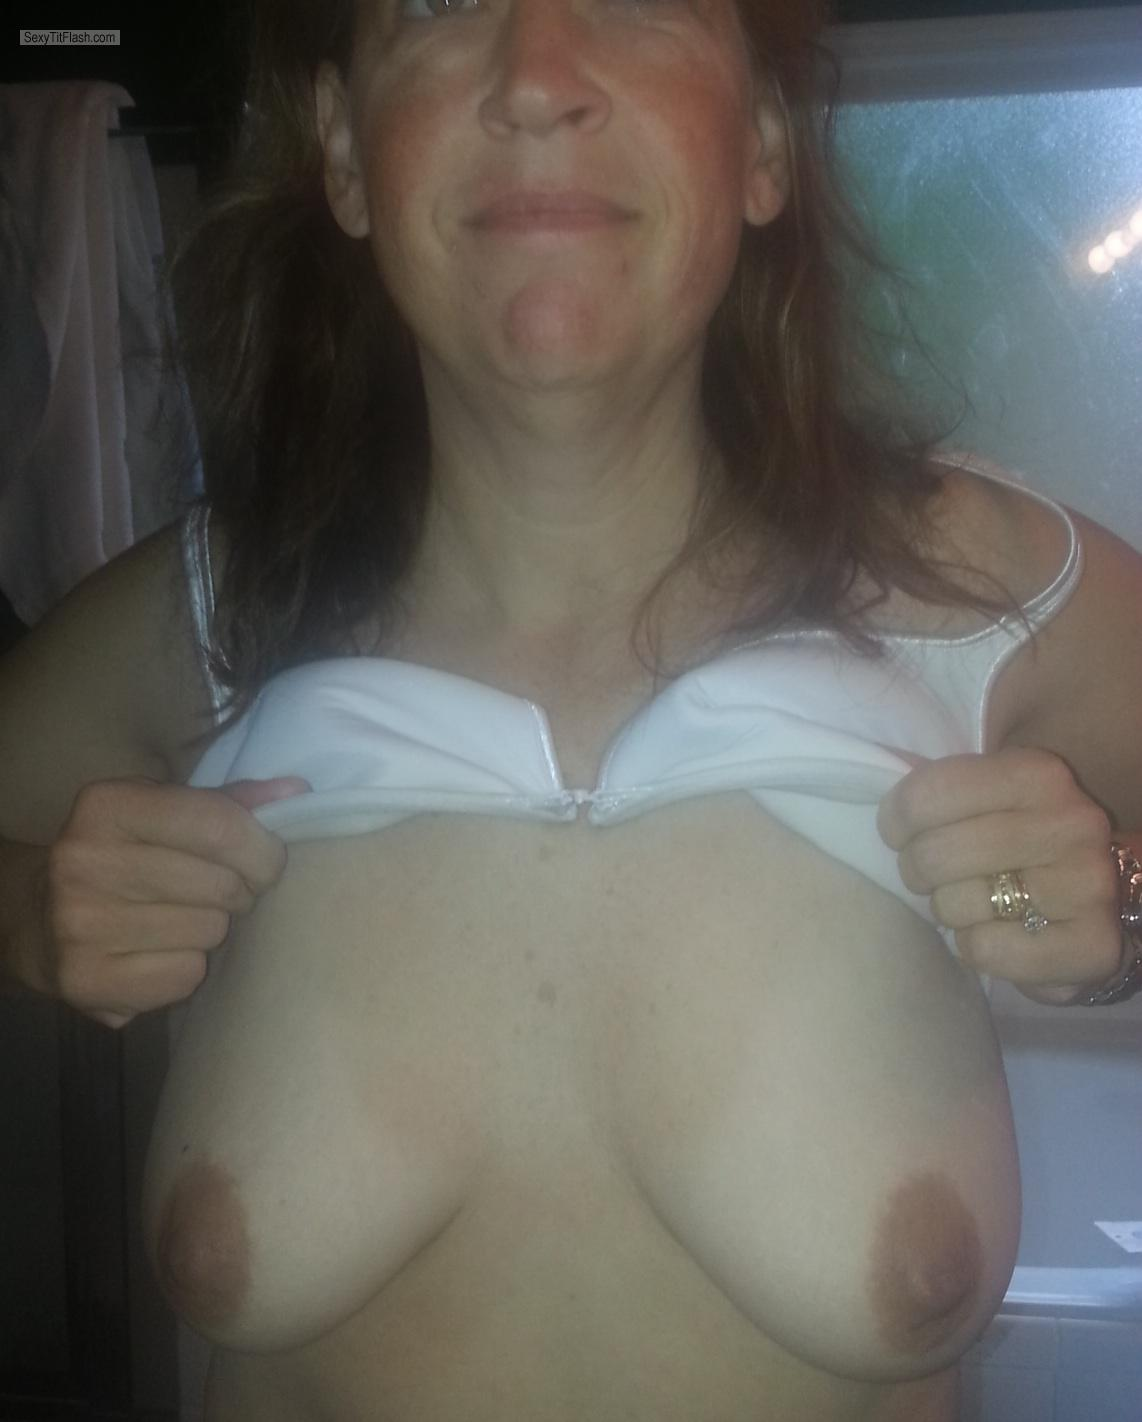 Medium Tits Of My Wife FYI